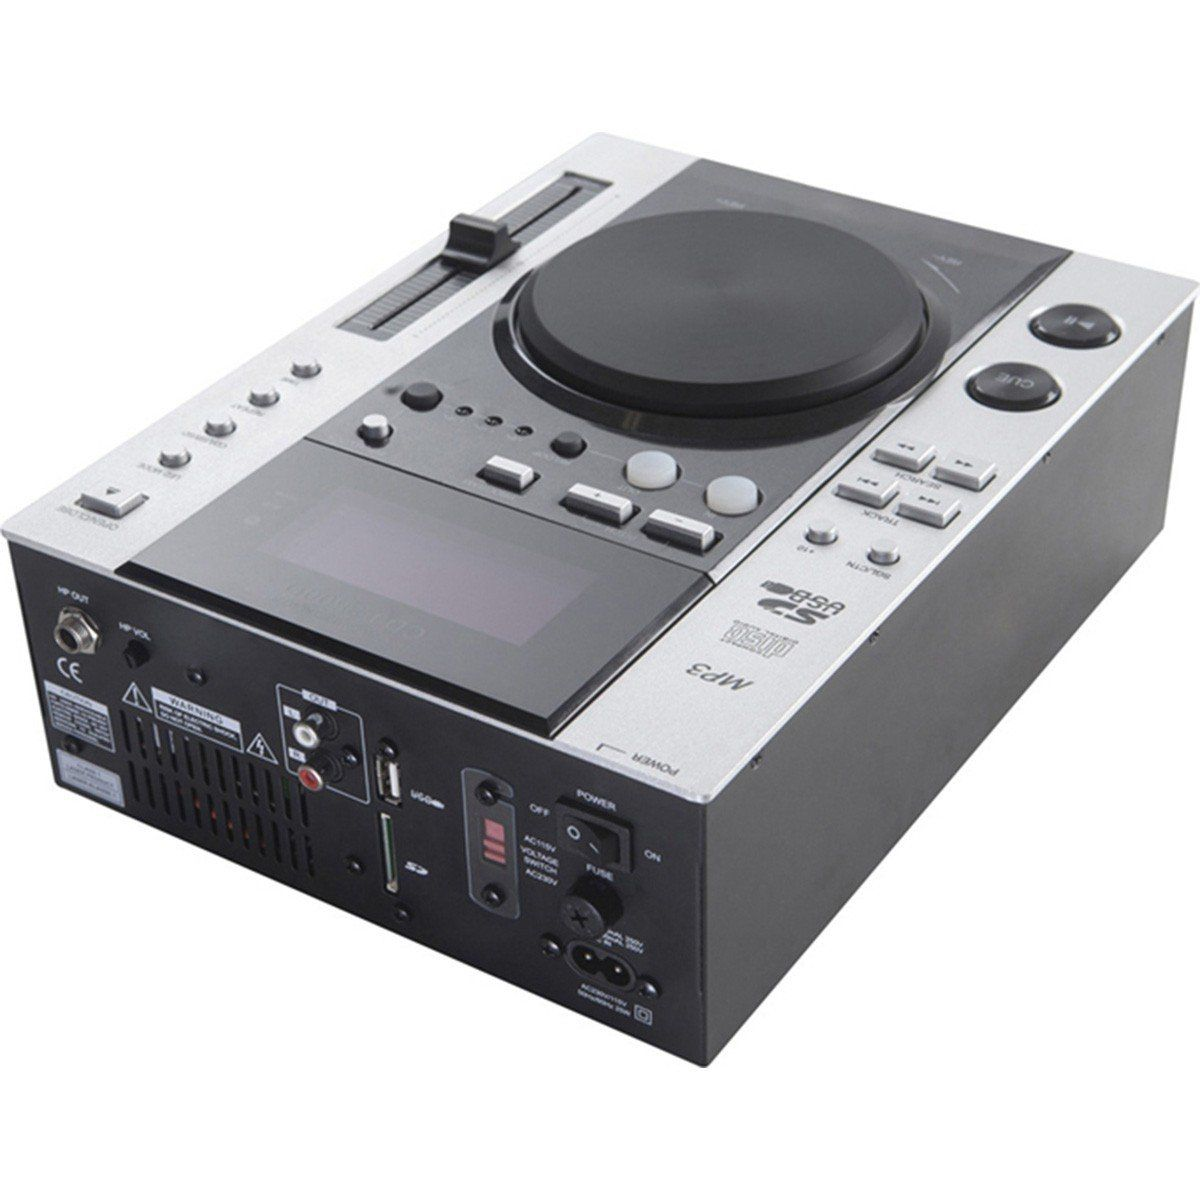 Napoli CDJ-3500 Player Mp3 Napoli CDJ3500 Ideal para Djs Iniciantes